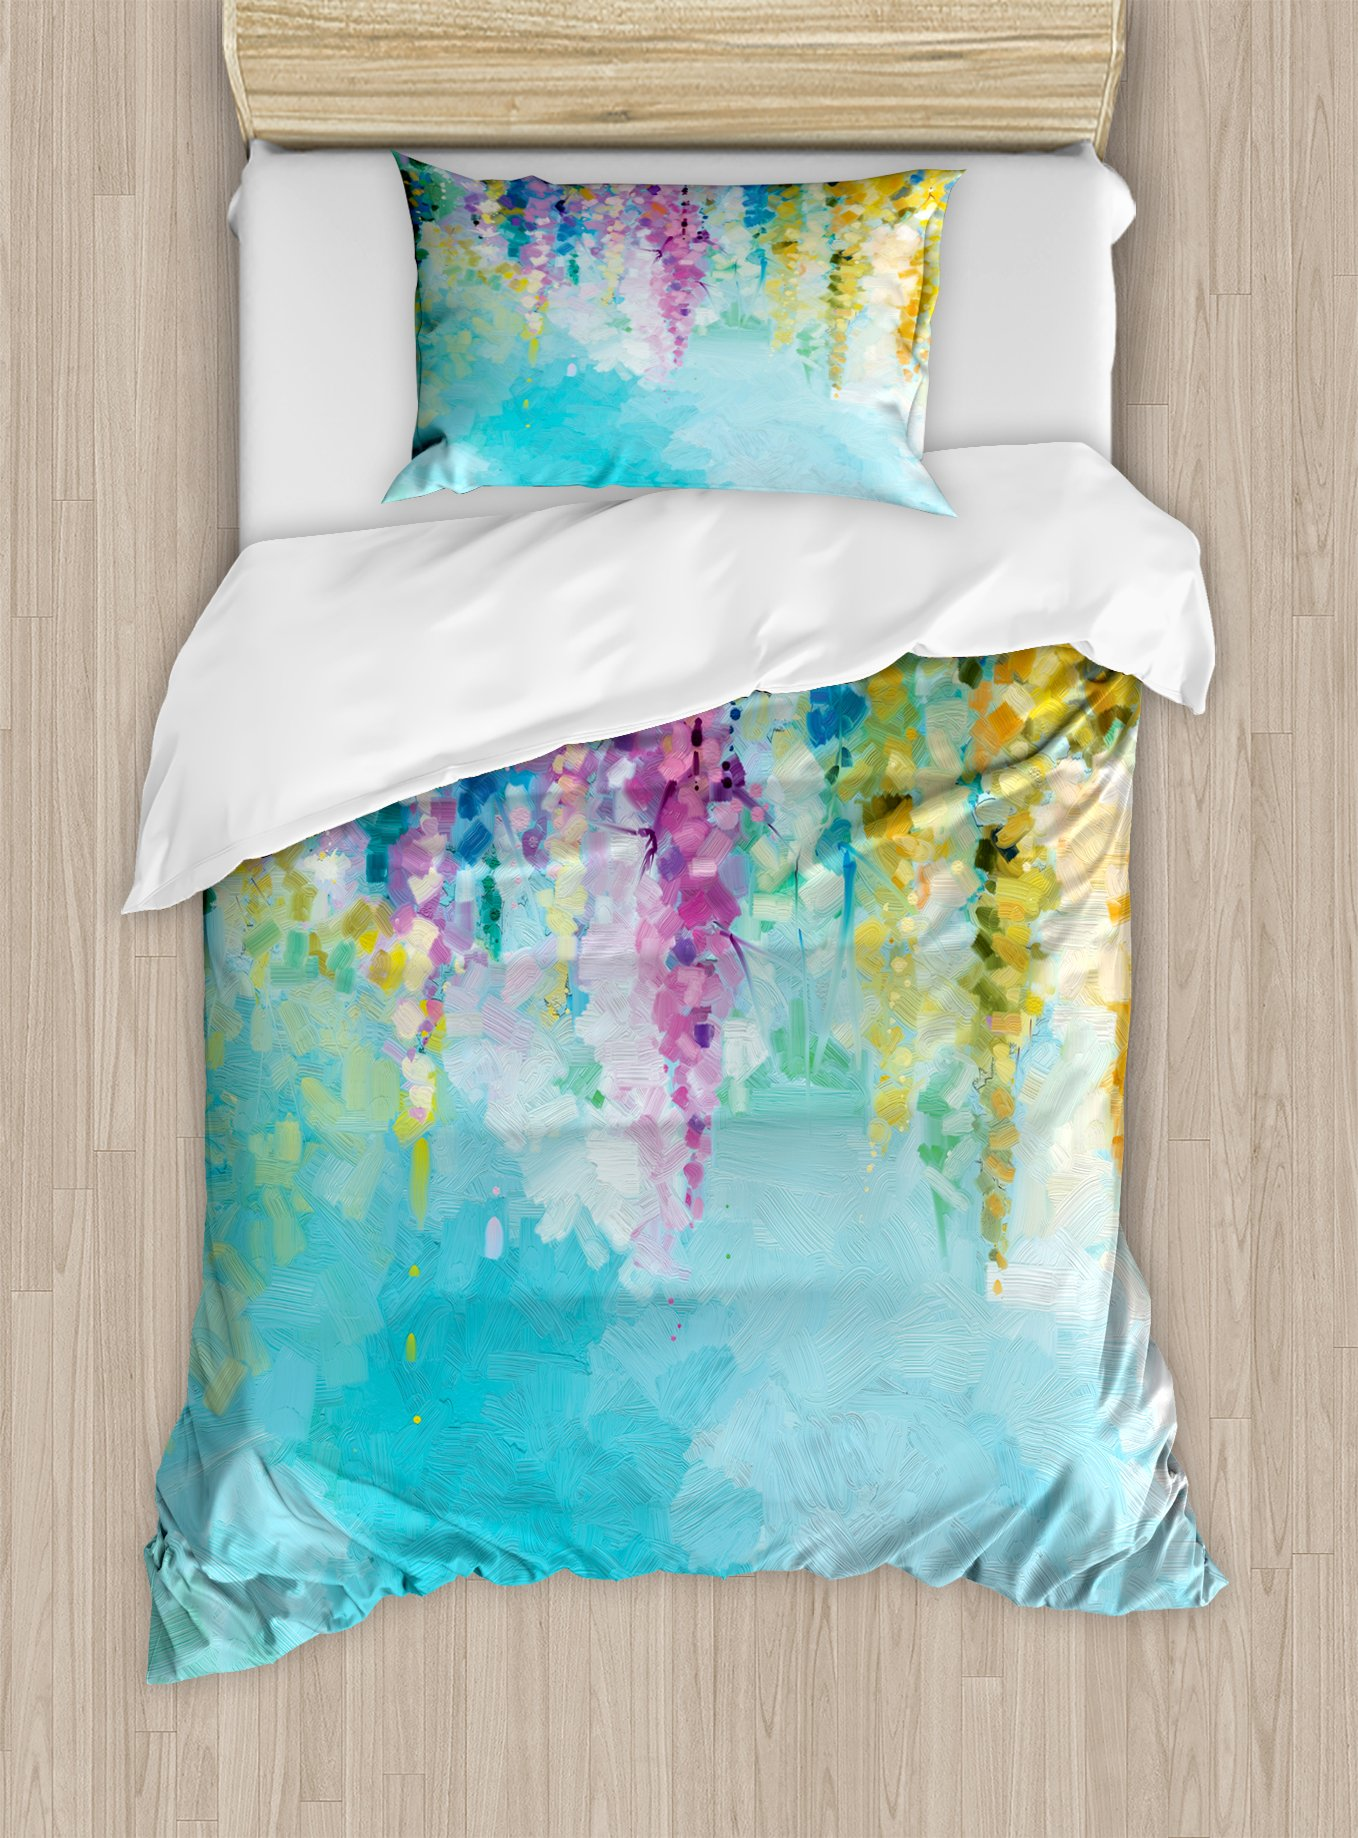 Ambesonne Flower Duvet Cover Set Twin Size, Abstract Ivy Romantic and Inspiring Landscape Spring Floral Artwork Nature Theme, Decorative 2 Piece Bedding Set with 1 Pillow Sham, Multicolor